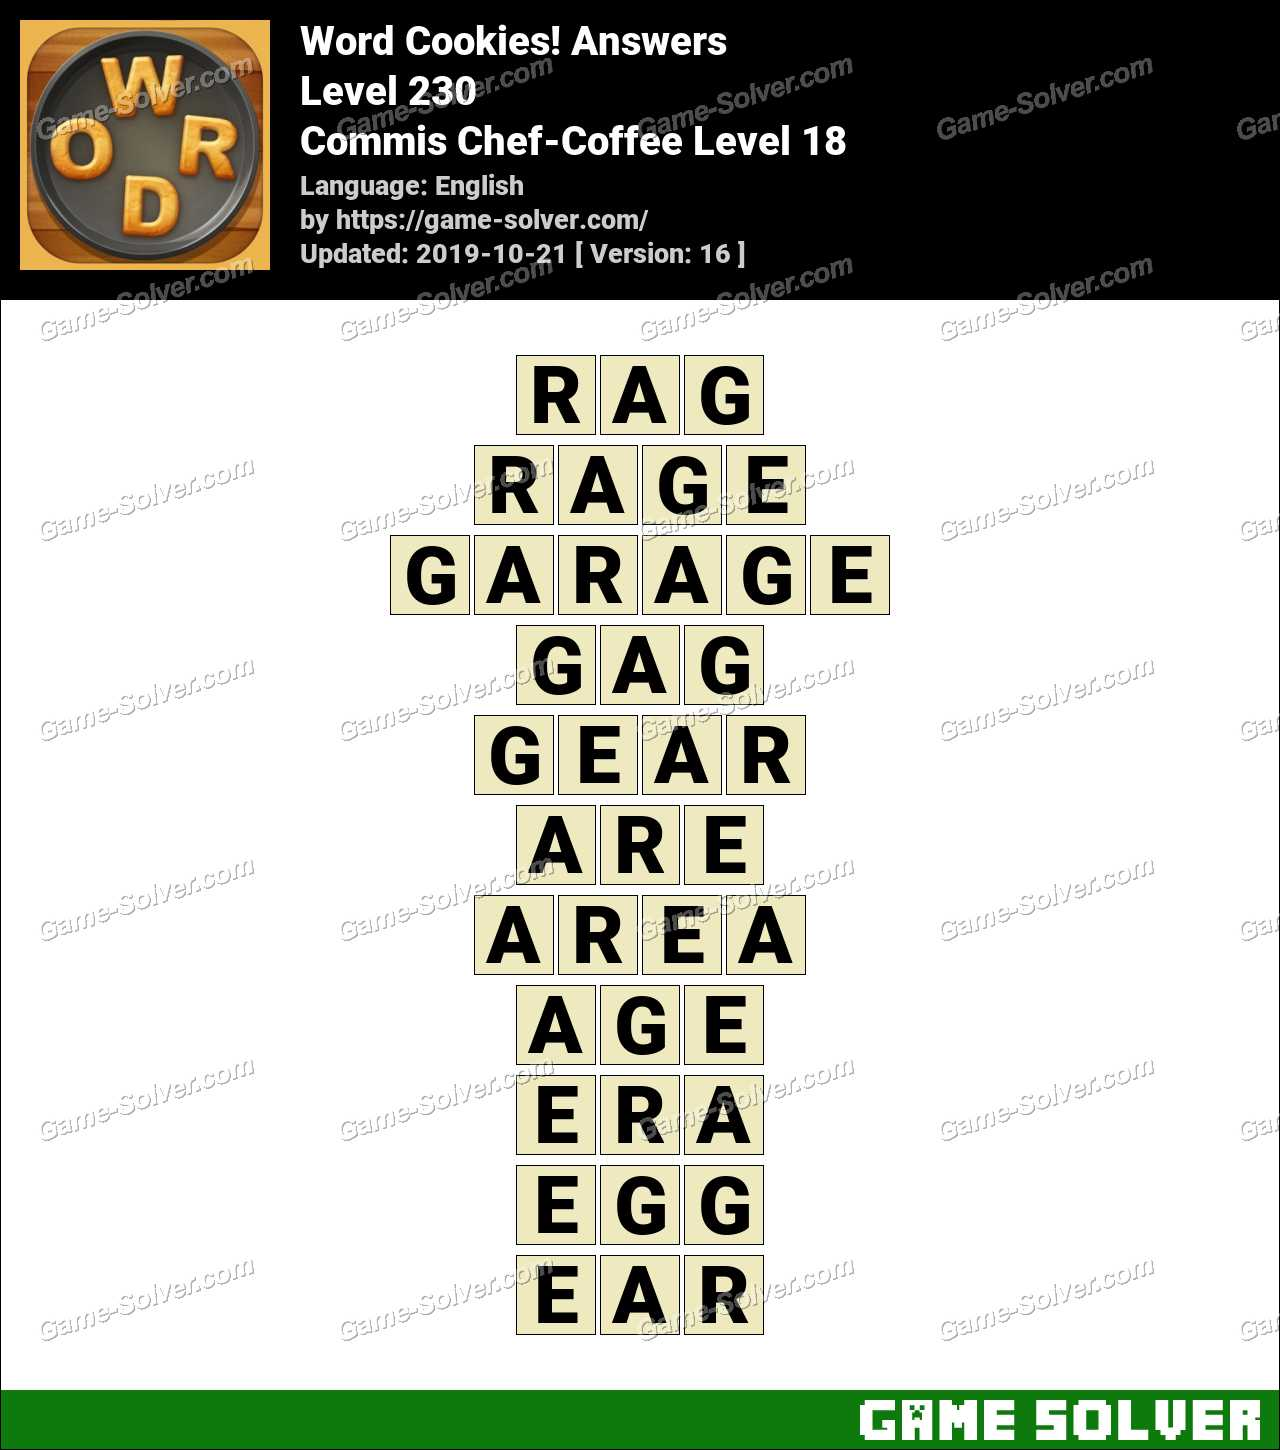 Word Cookies Commis Chef-Coffee Level 18 Answers